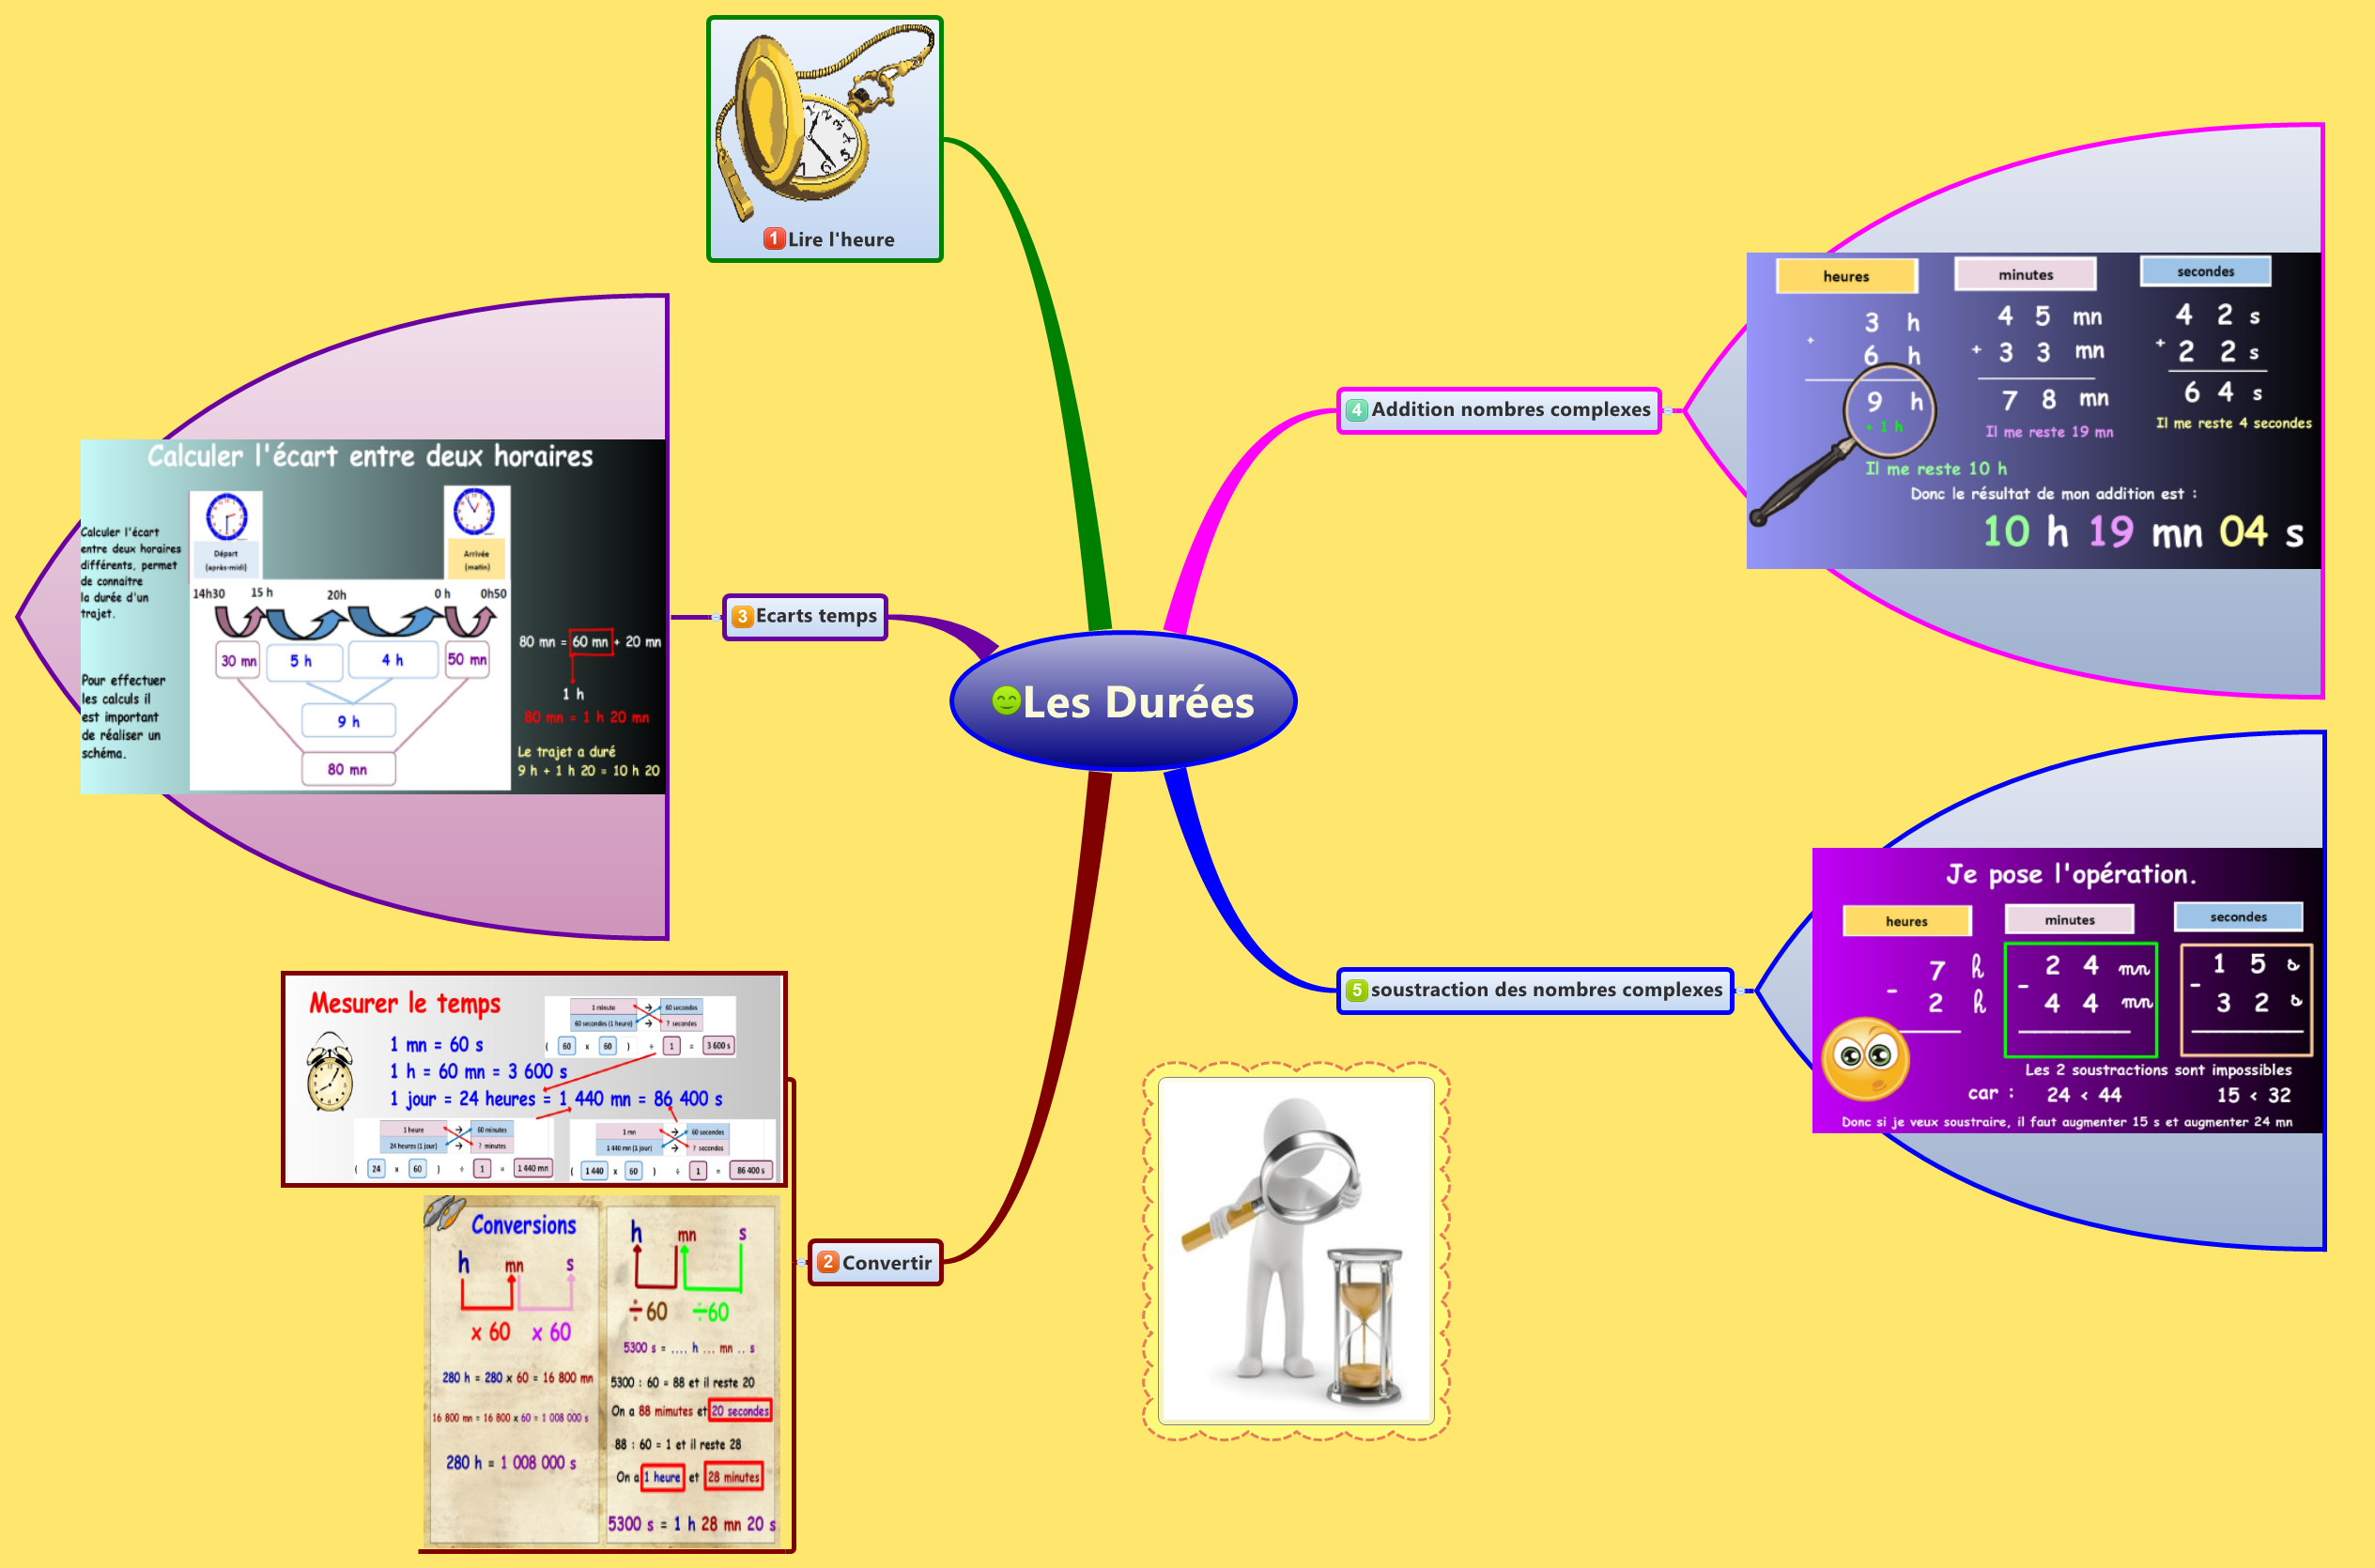 les dures cetoine xmind the most professional mind map software - Mind Map Generator Online